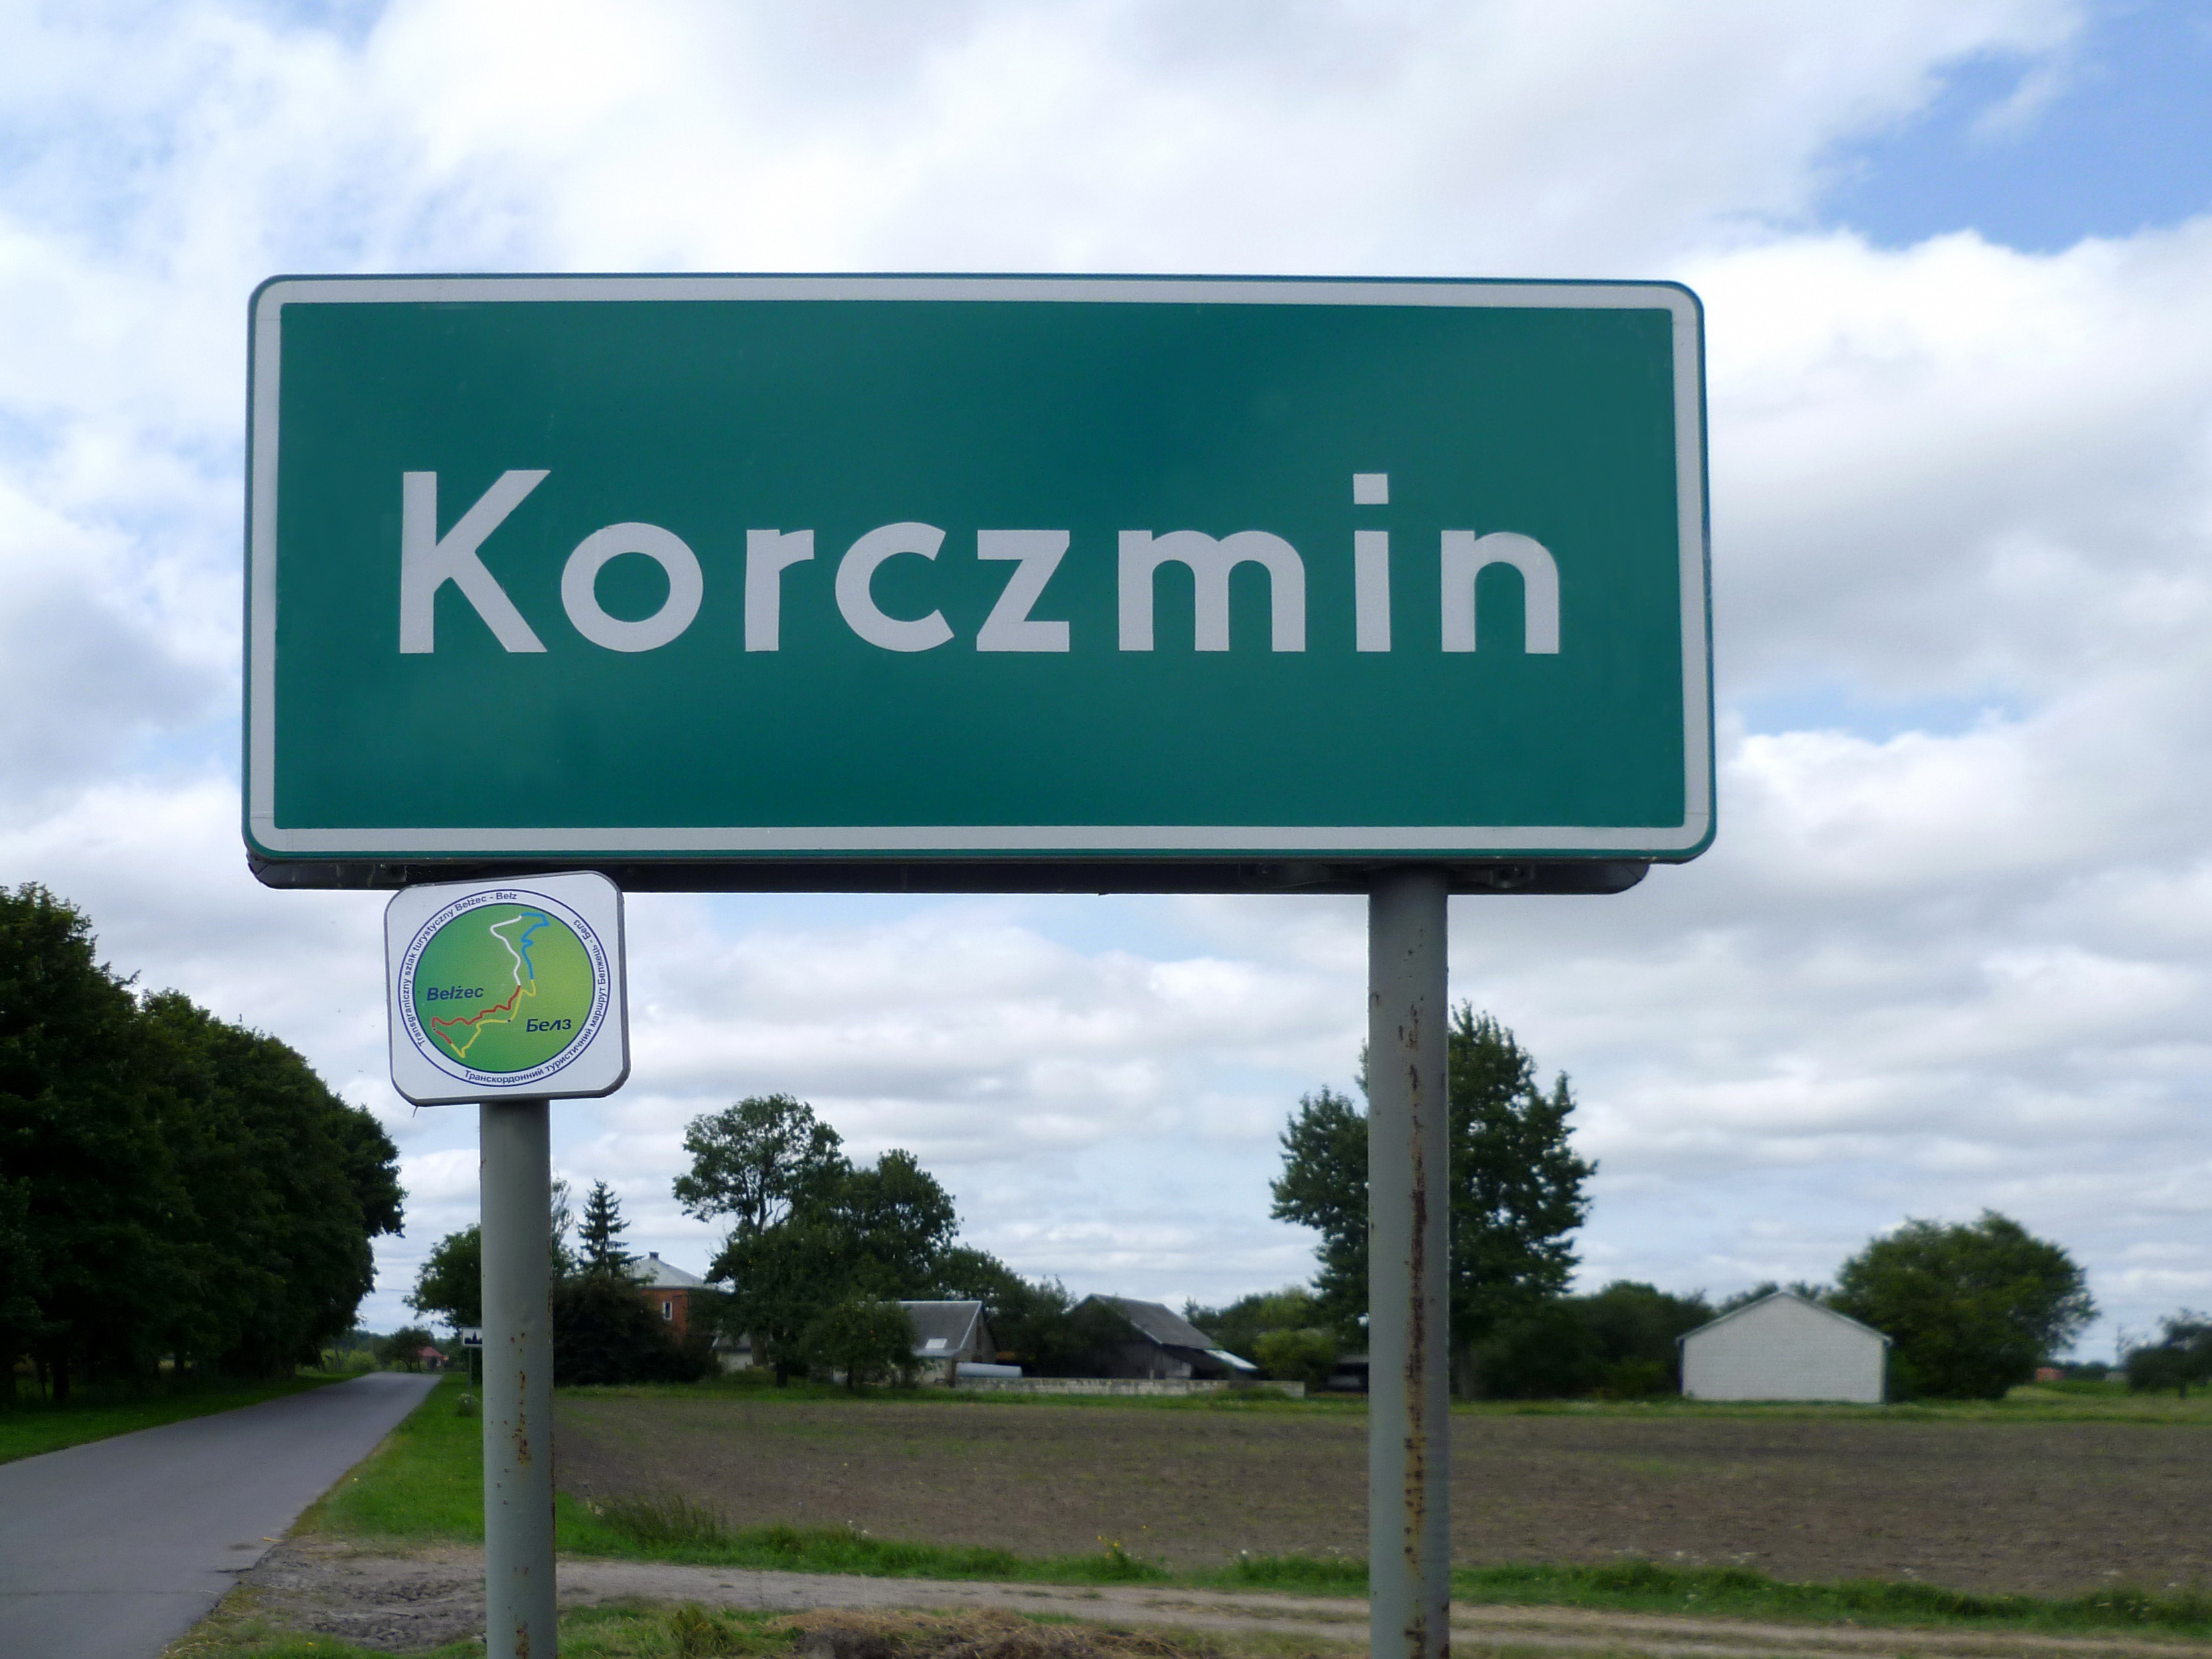 File:Korczmin-sign board of village.jpg - Wikimedia Commons